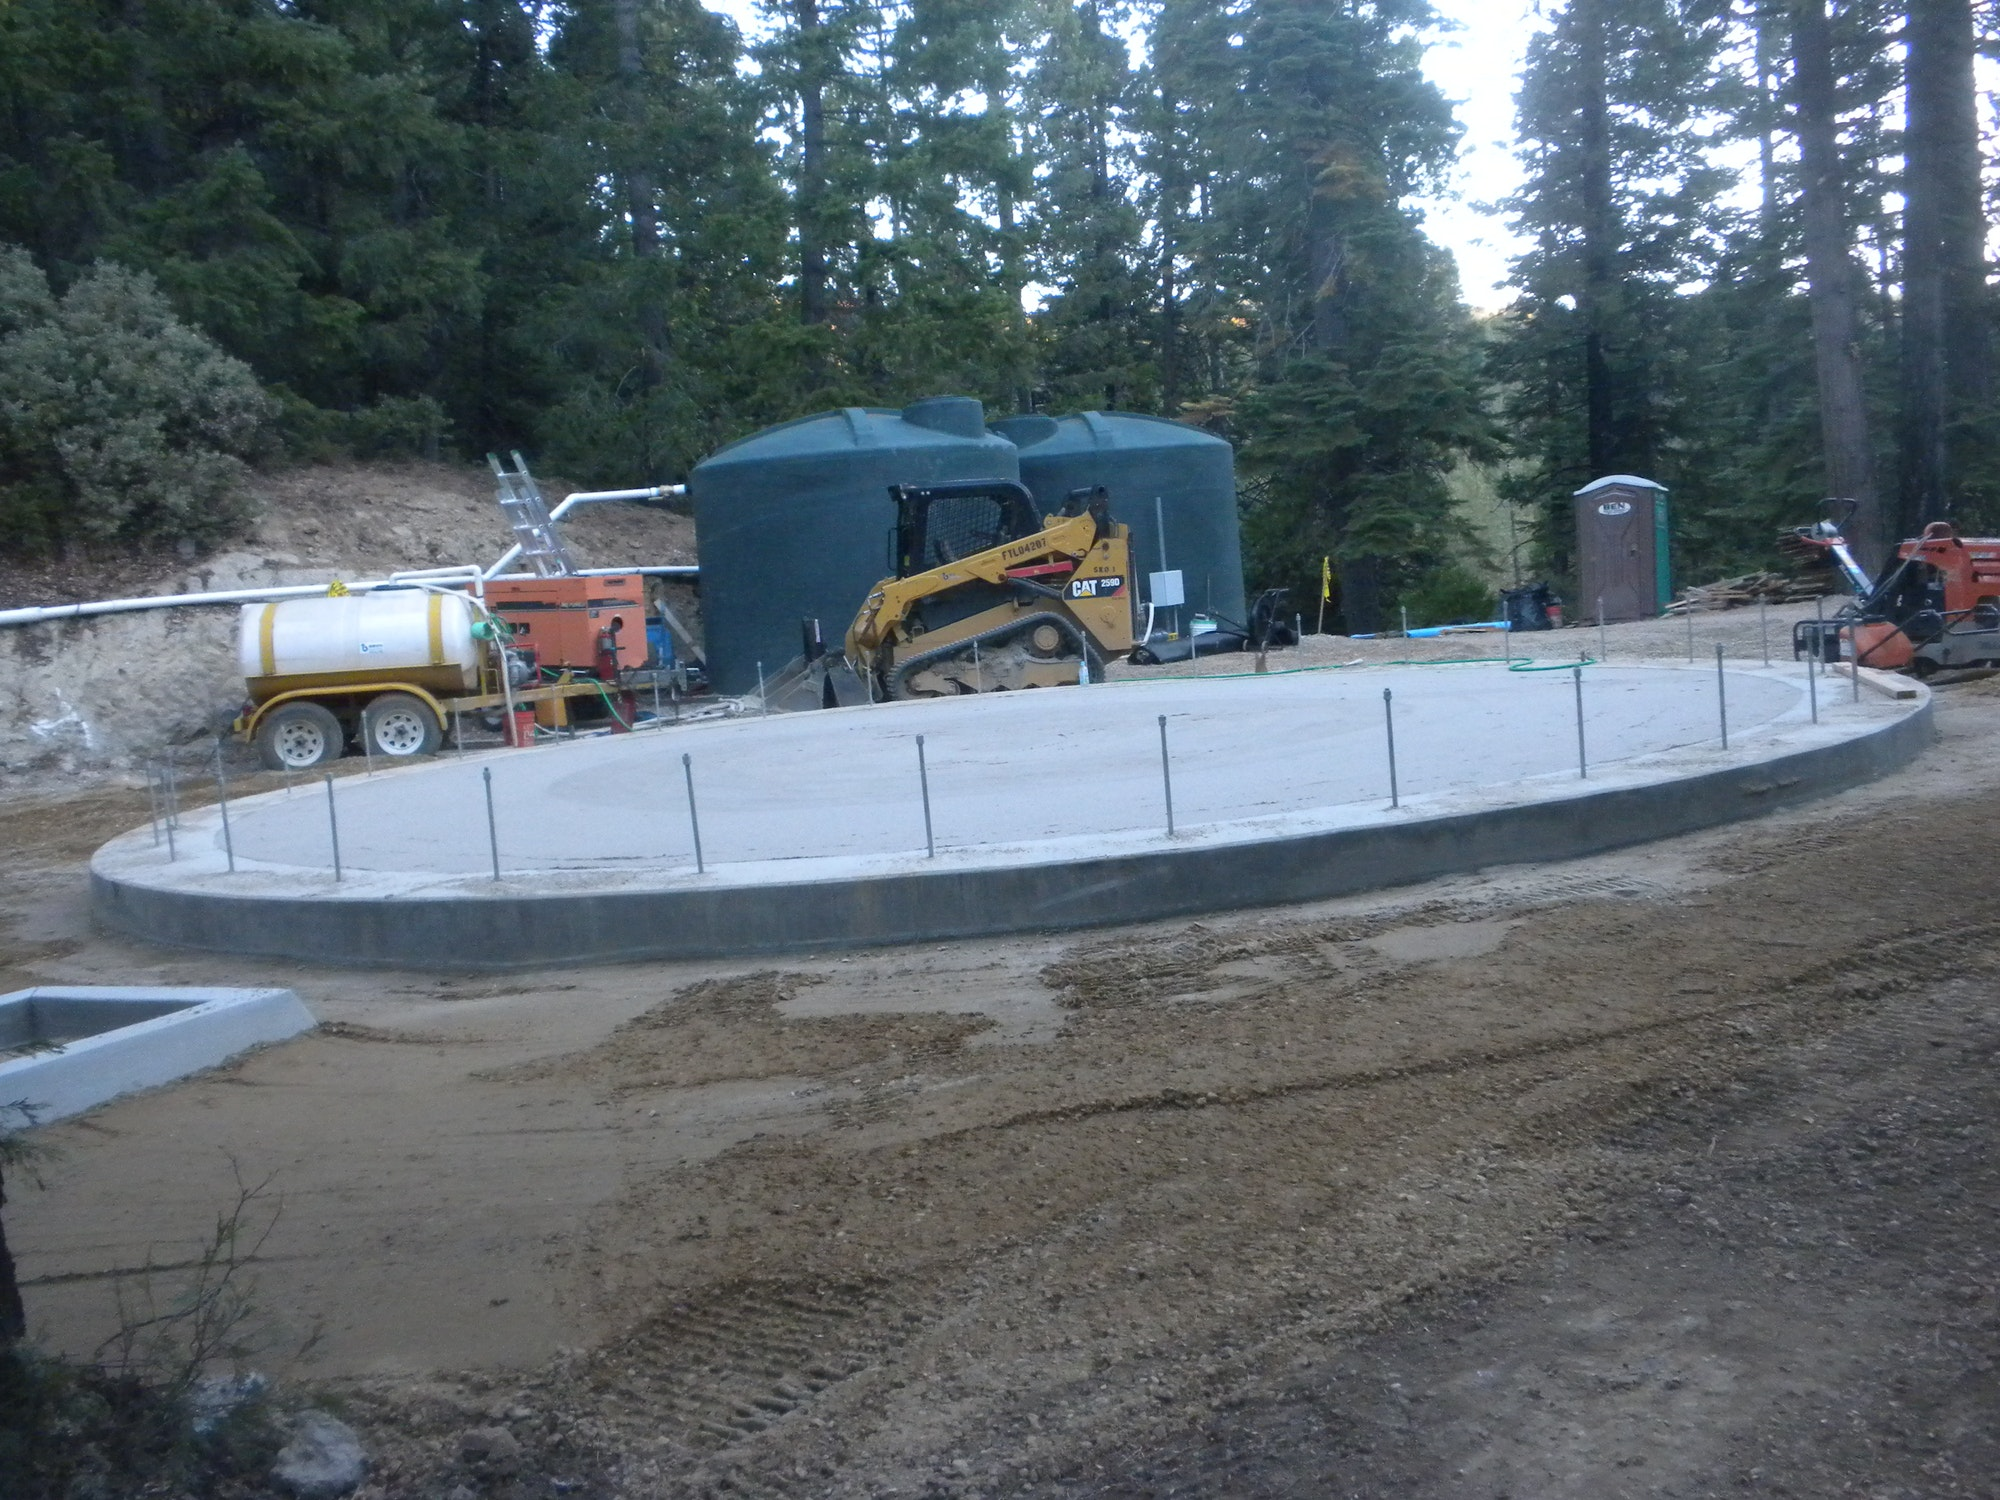 Oct. 9, 2018 7:15 am ready for tank construction